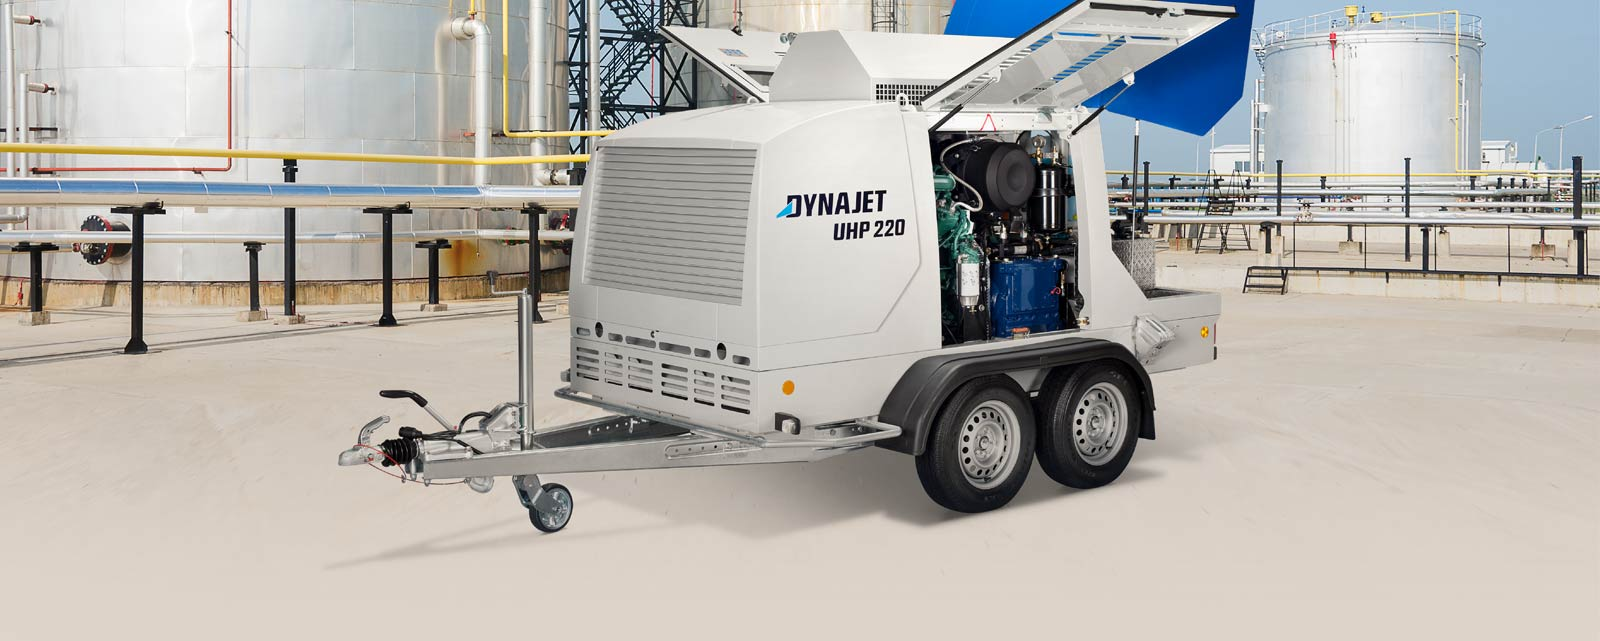 DYNAJET high-pressure cleaners get industrial plants clean in no time.